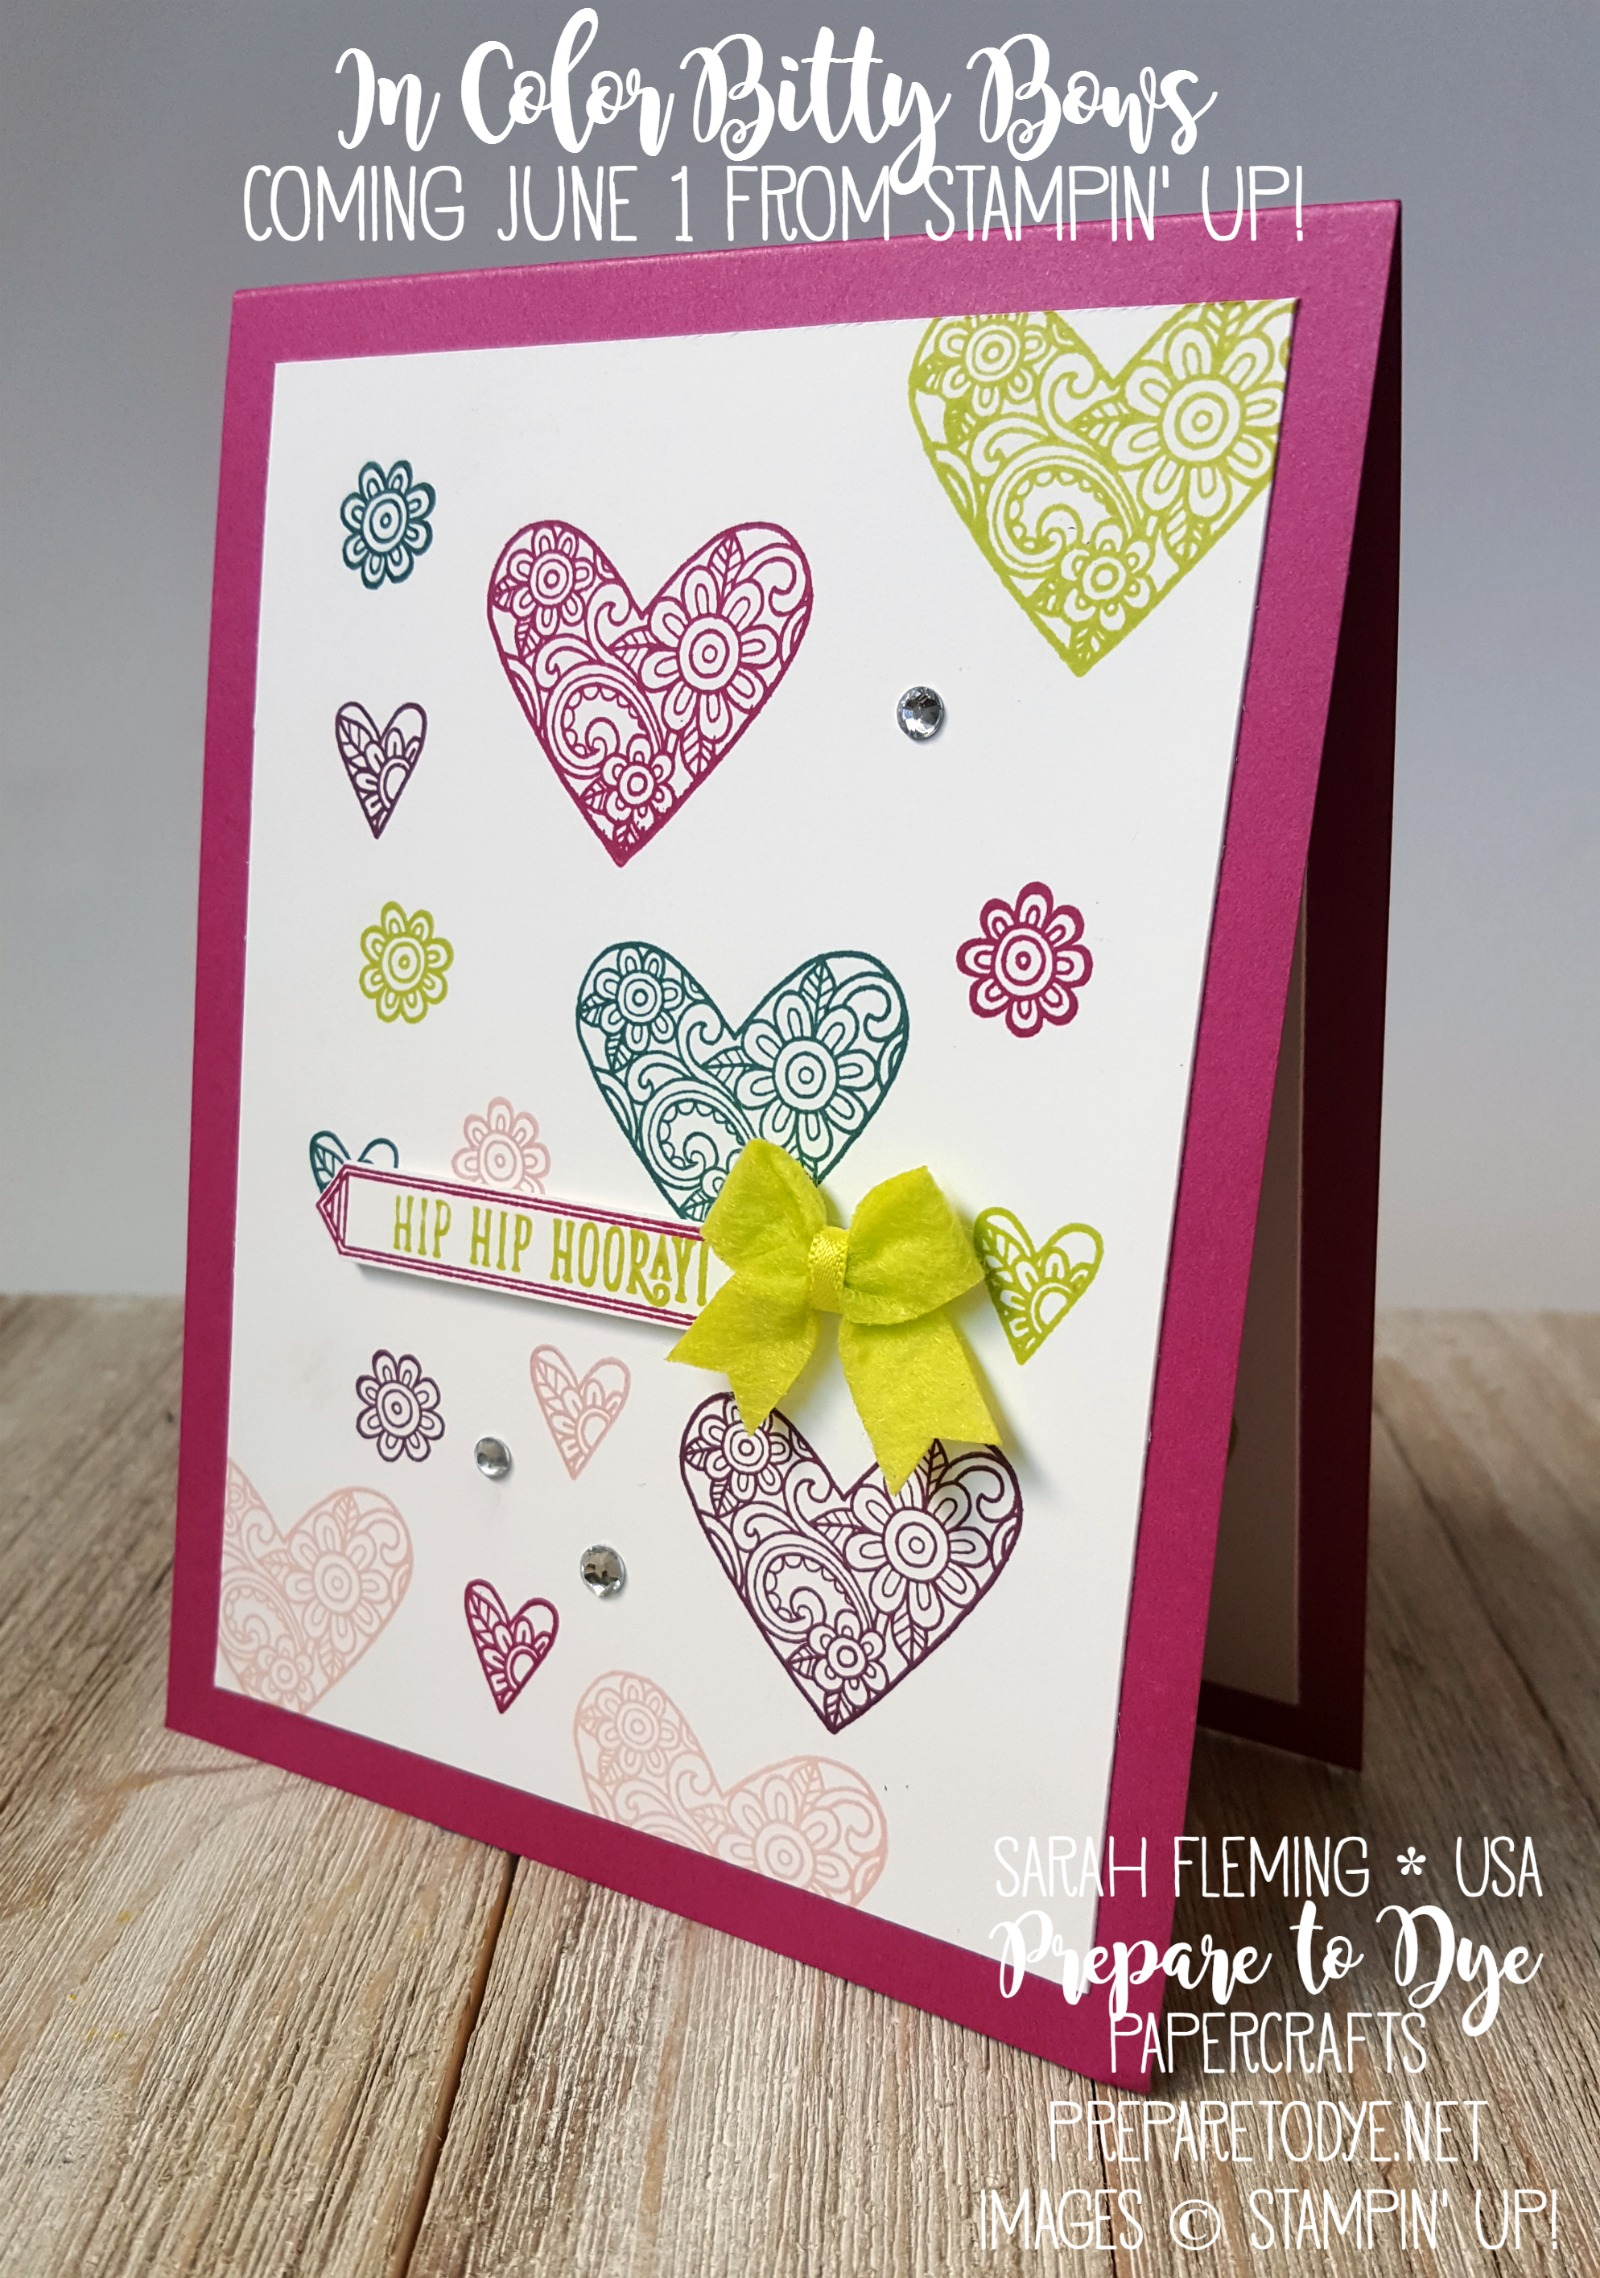 Stampin' Up! Ribbon of Courage and Happy Birthday Gorgeous stamp sets with 2017-2019 In Colors & In Color Bitty Bows , all available June 1 - Sarah Fleming - Prepare to Dye Papercrafts